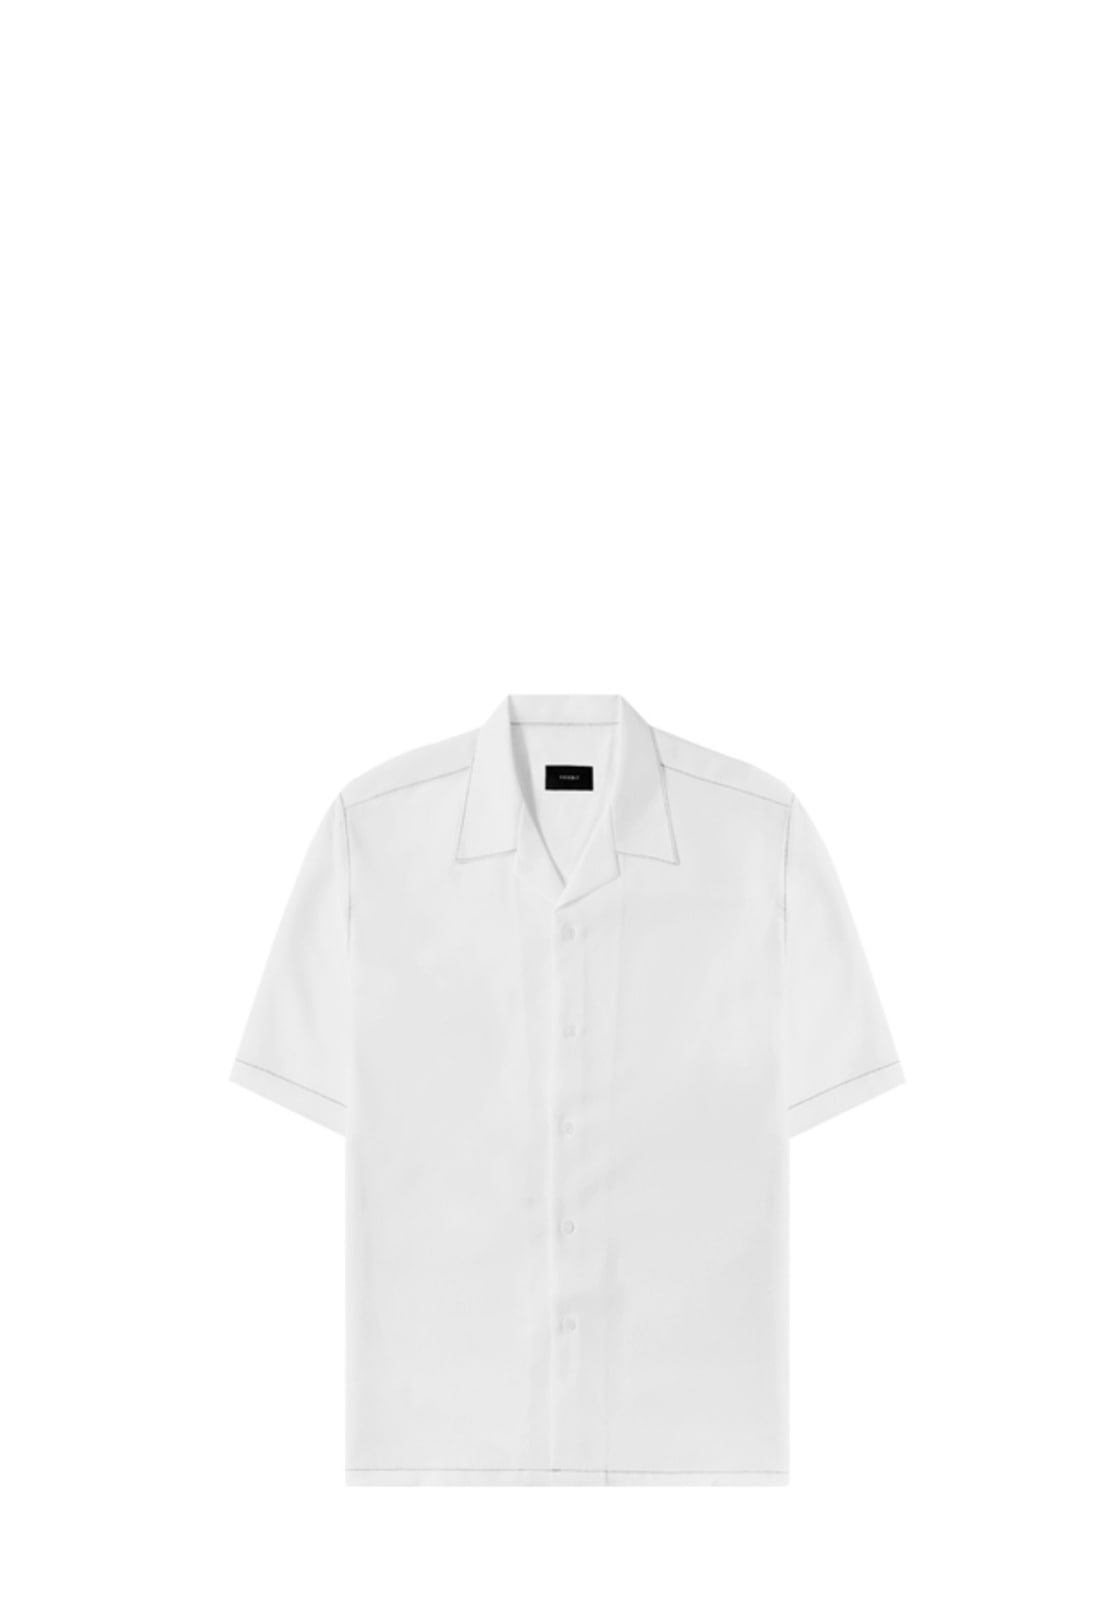 V420 STITCHES SHIRT  WHITE